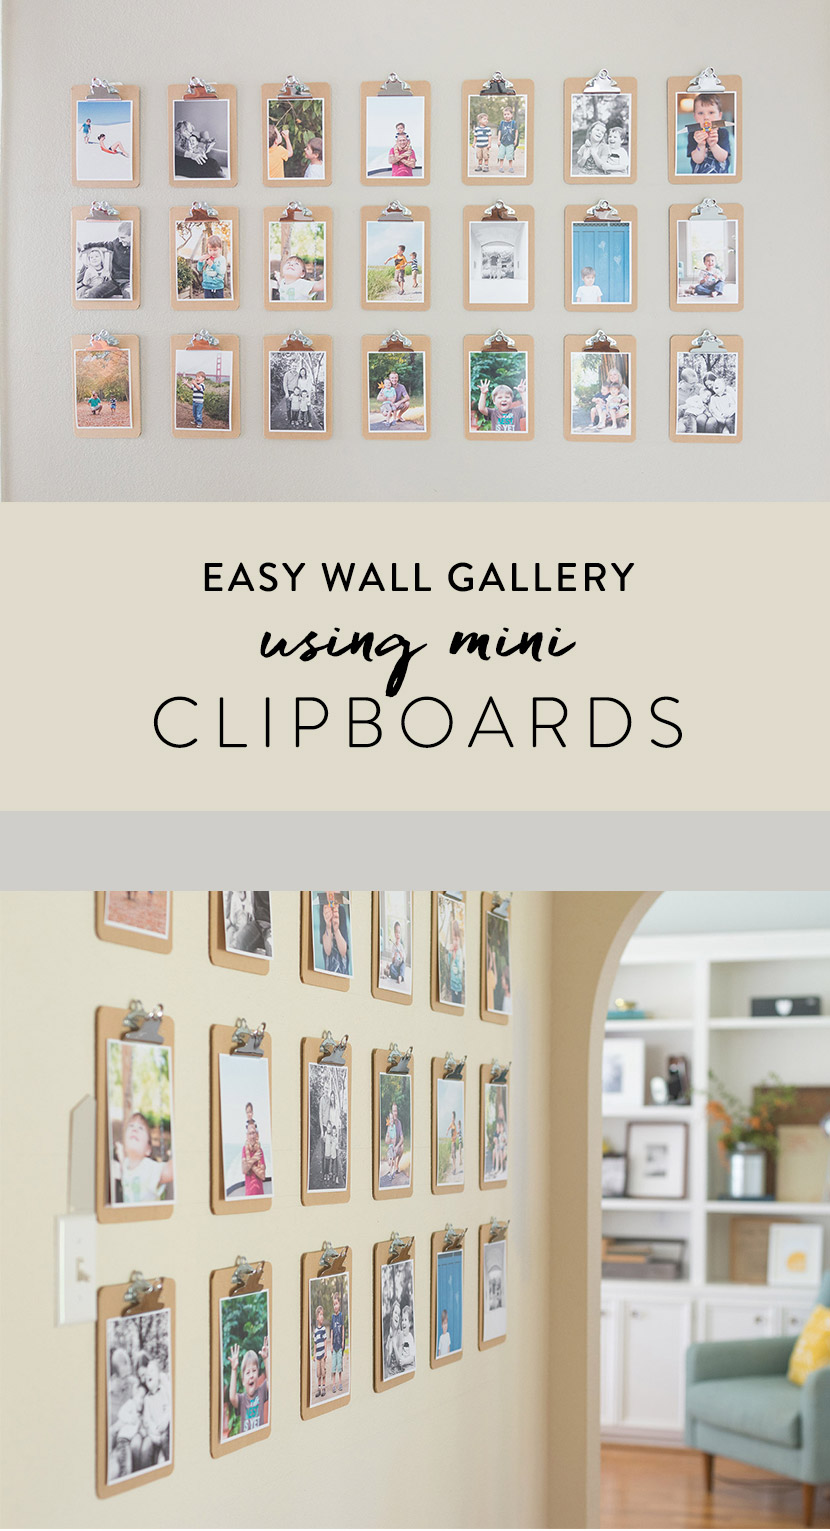 Easy Wall Gallery Idea Using Mini-Clipboards and 5x7 Photo Prints